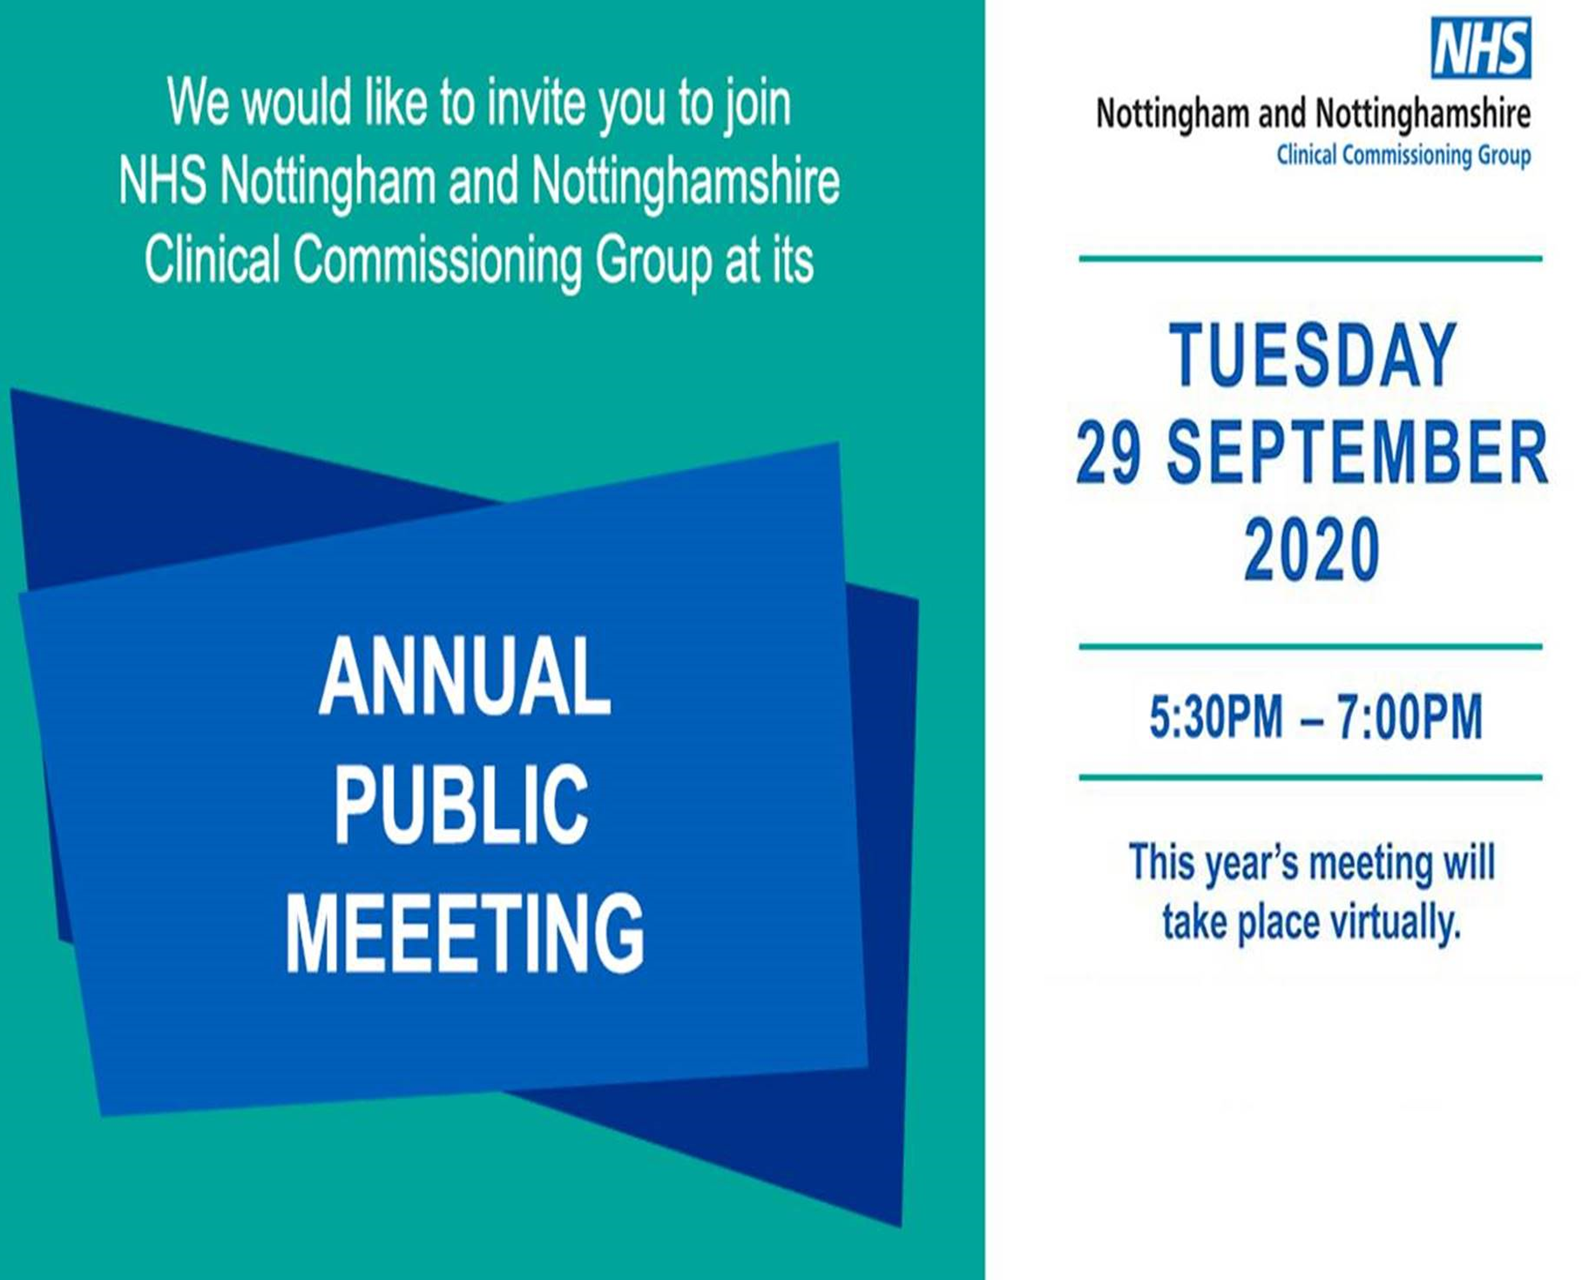 NHS Nottingham and Nottinghamshire CCG Annual Public Meeting